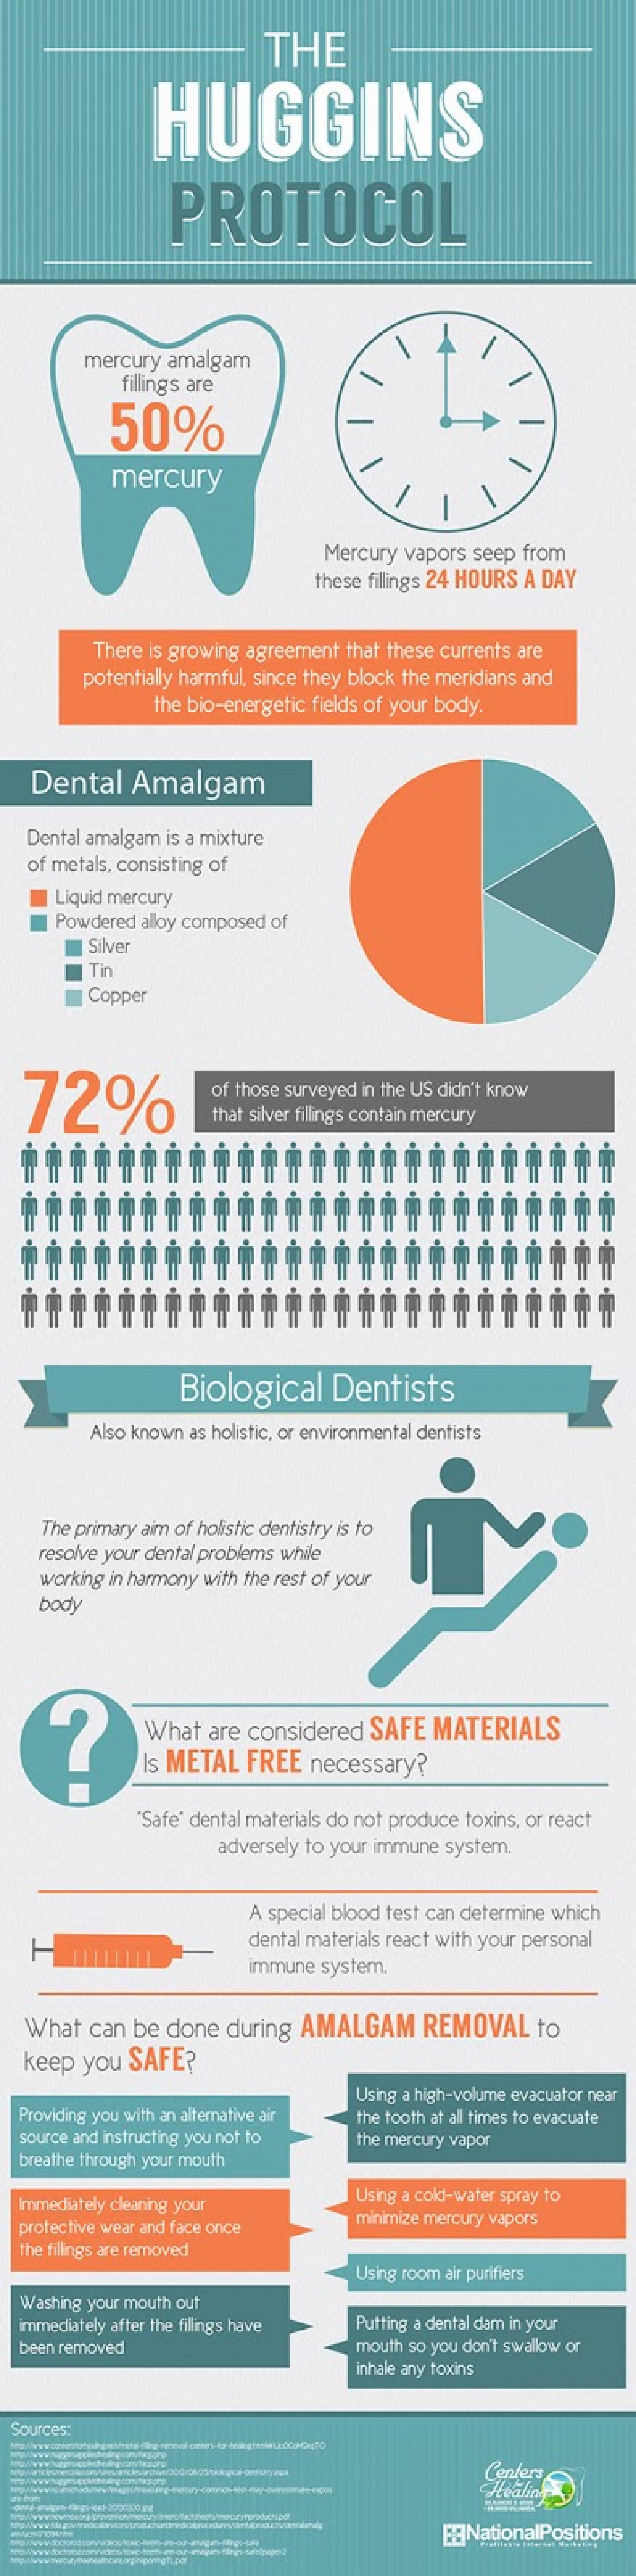 The Huggins Protocol - Why Mercury Amalgam Fillings Are Harmful And Should Be Removed Infographic